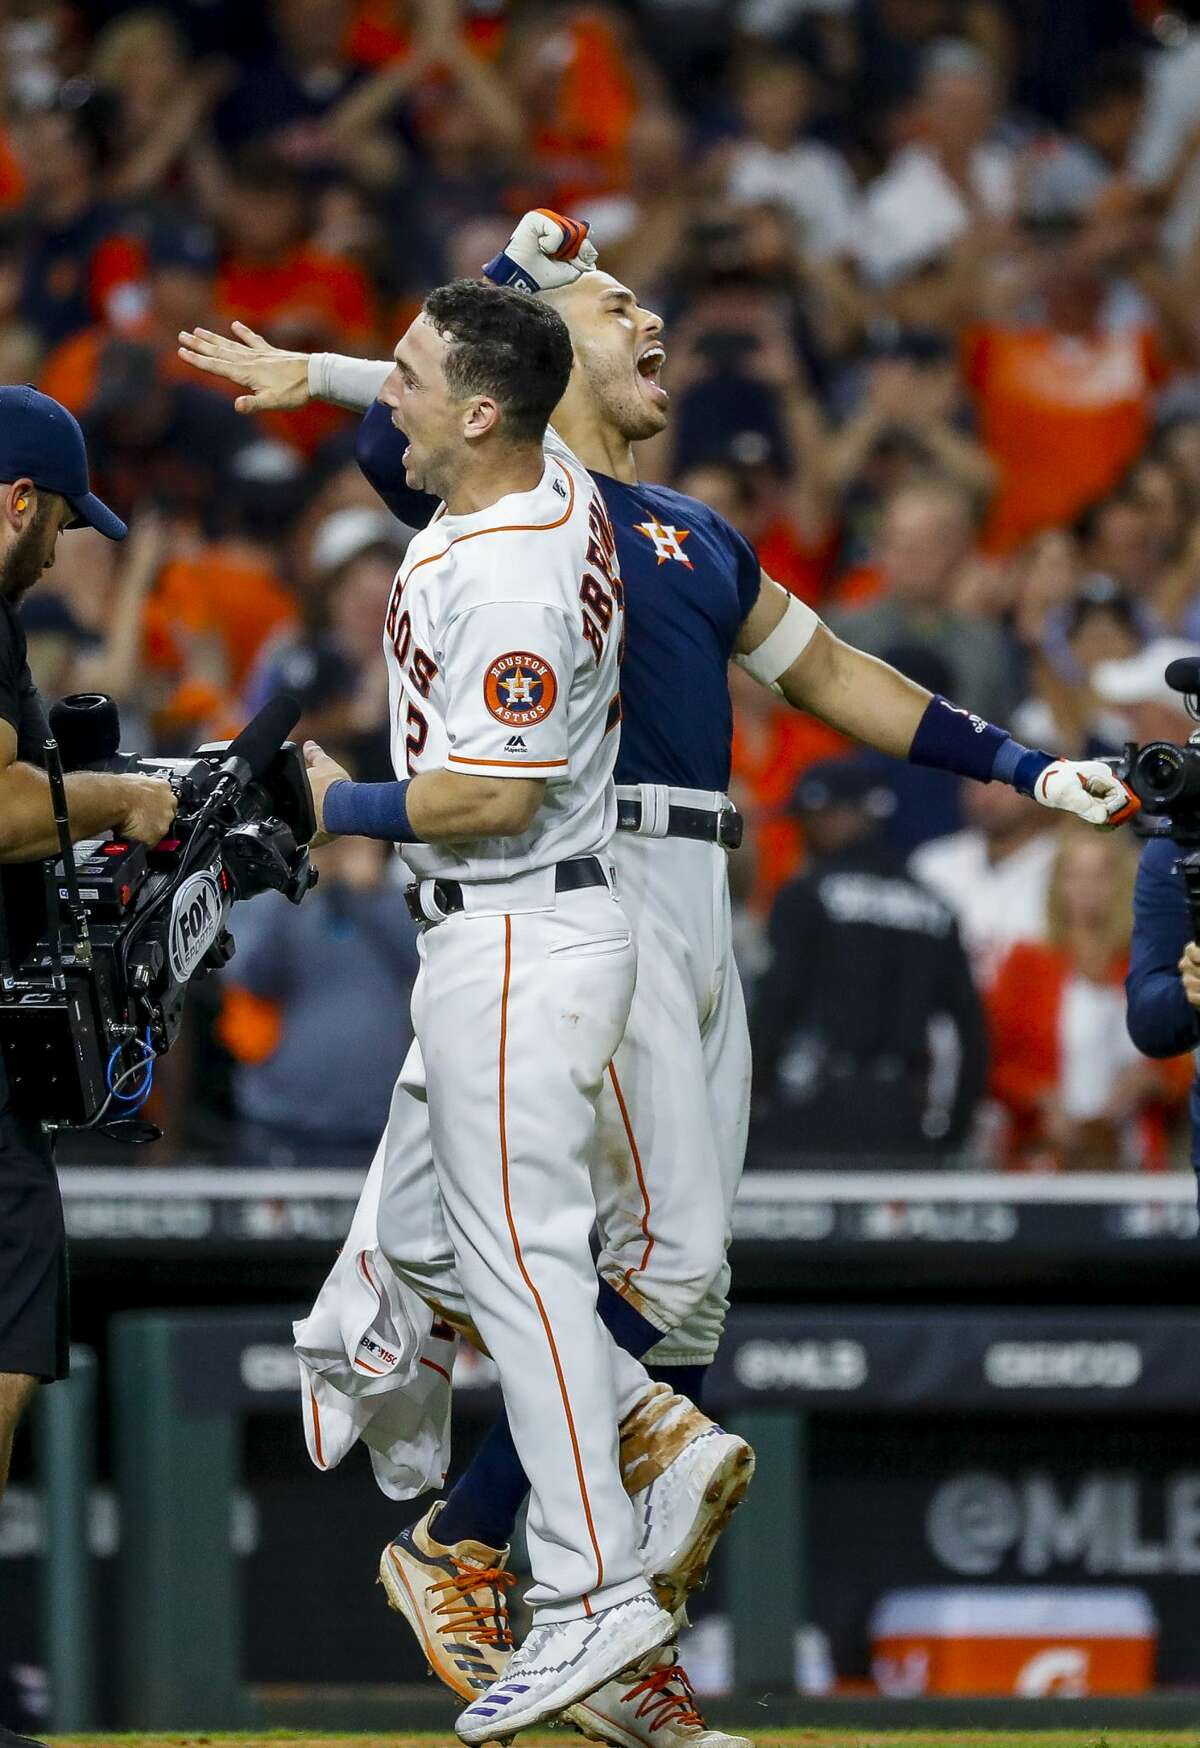 Houston Astros third baseman Alex Bregman (2) and Houston Astros shortstop Carlos Correa (1) celebrate Correa's walk off home run in the eleventh inning to win Game 2 of the American League Championship Series at Minute Maid Park on Sunday, Oct. 13, 2019, in Houston.